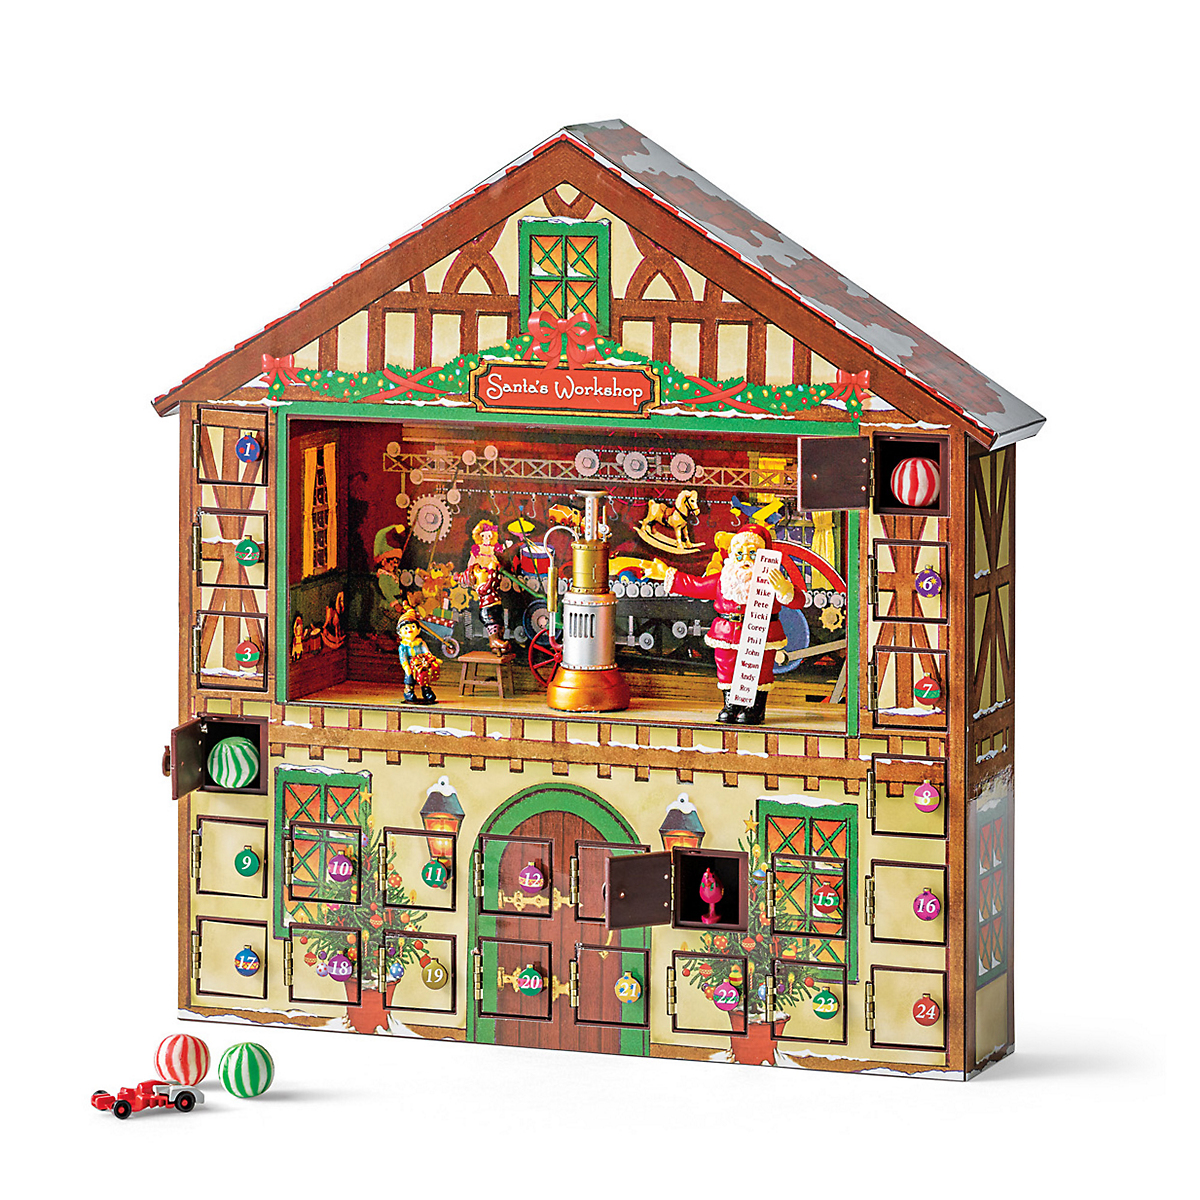 Animated Santa's Workshop Advent Calendar